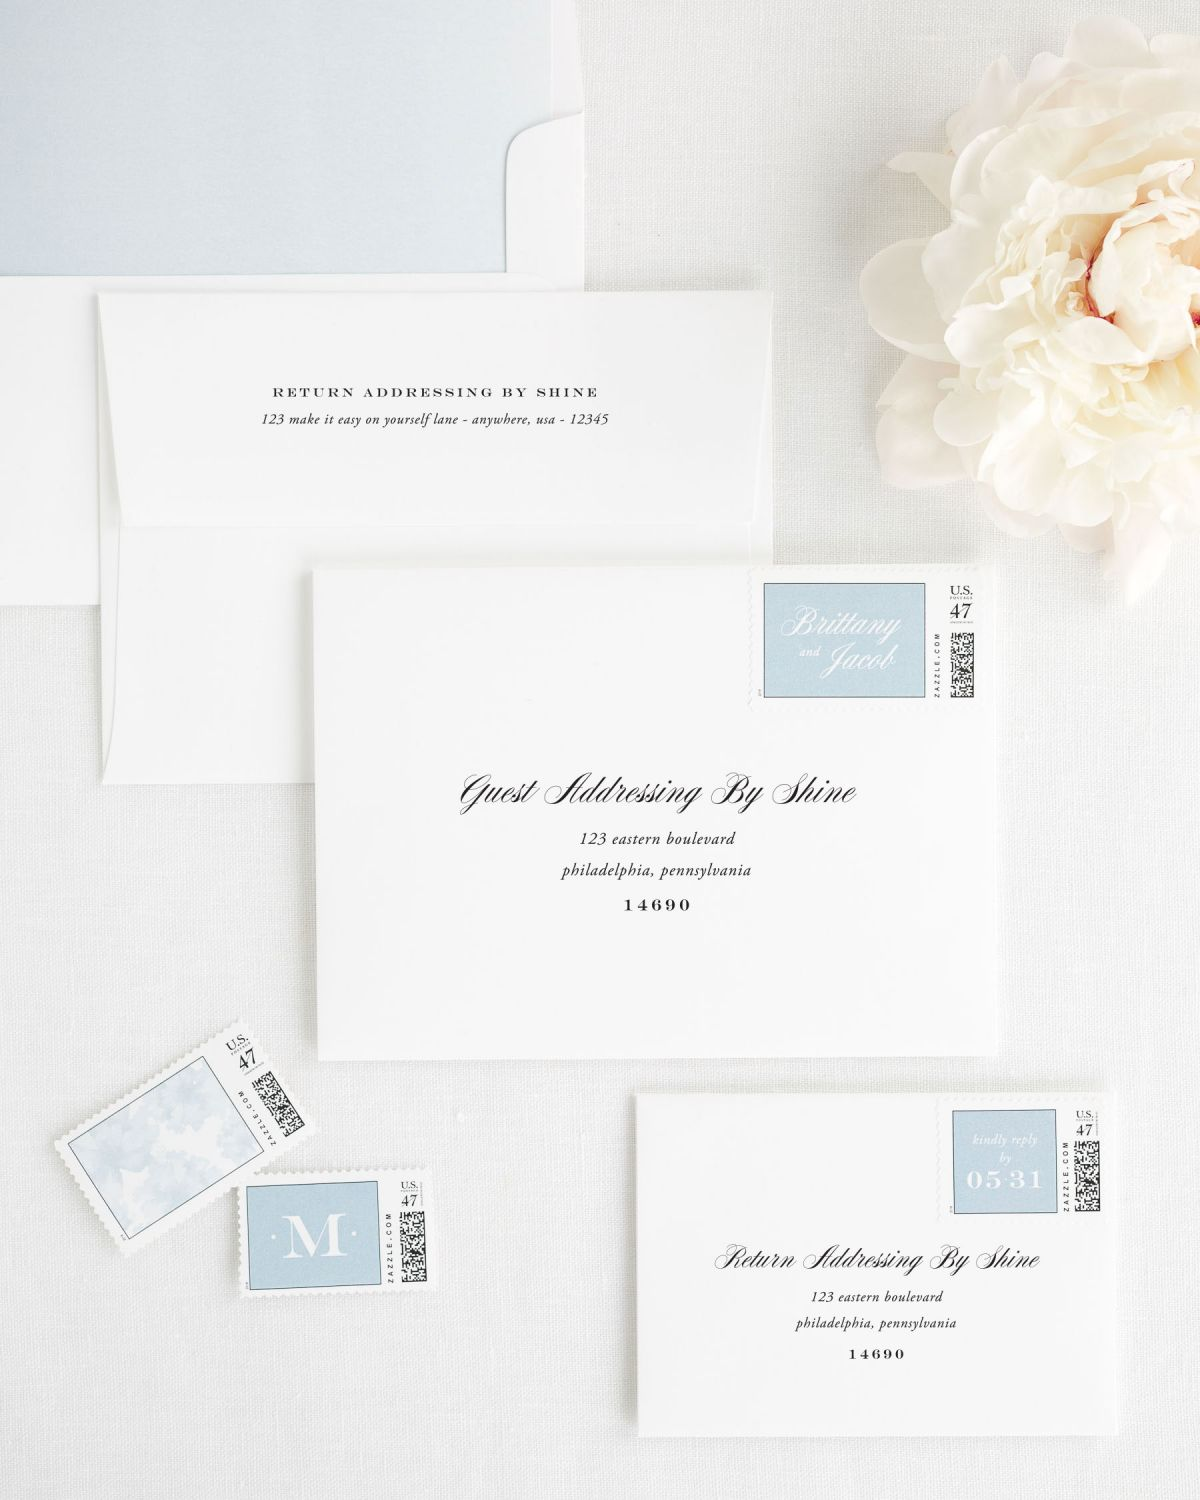 Wedding Invitaiton Envelopes with Address Printing and Matching Stamps